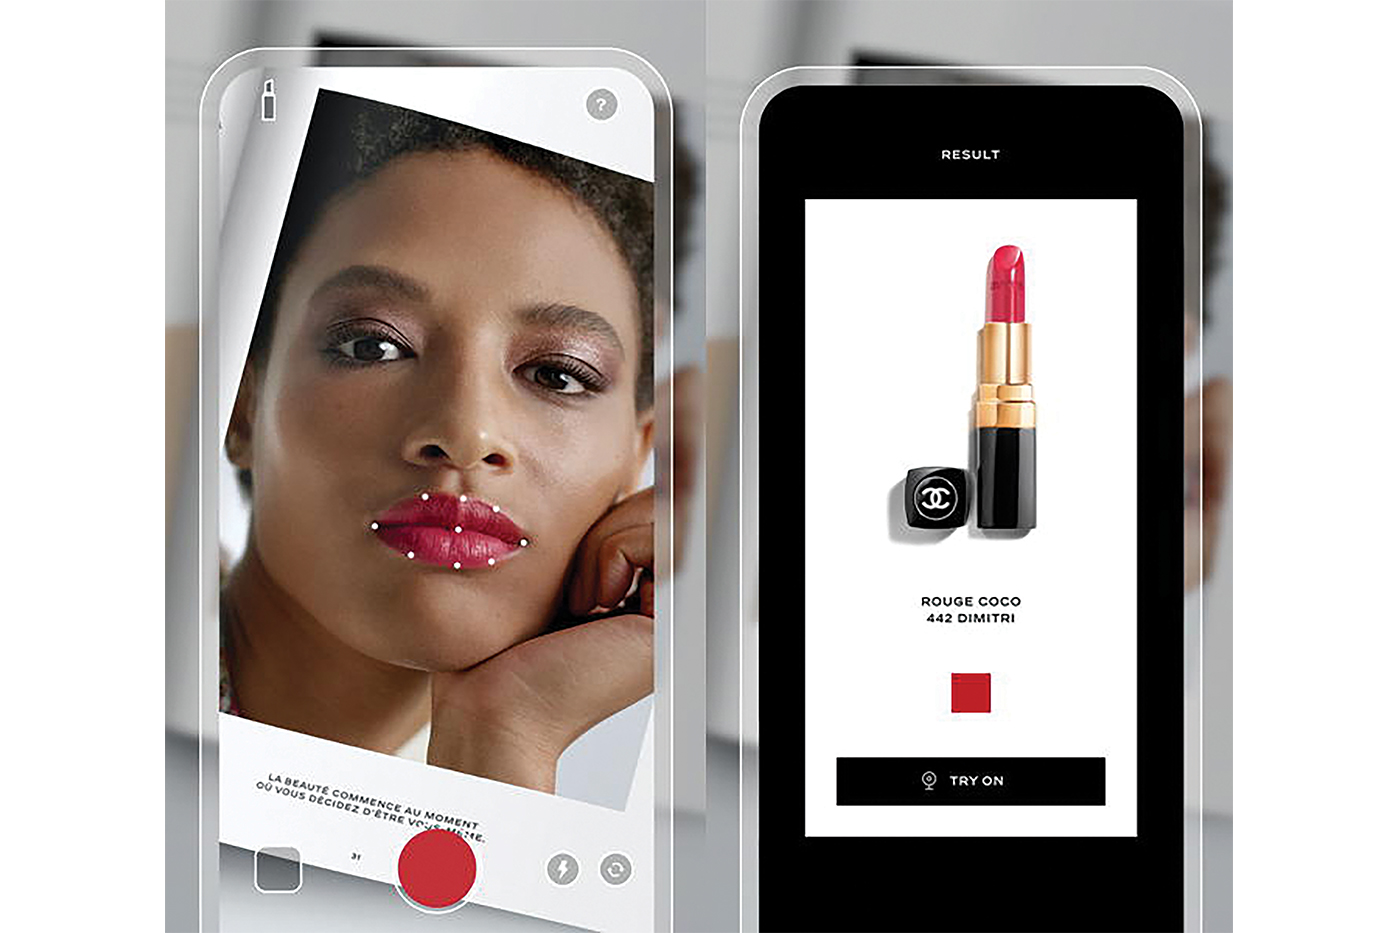 Chanel Launches LipScanner Application